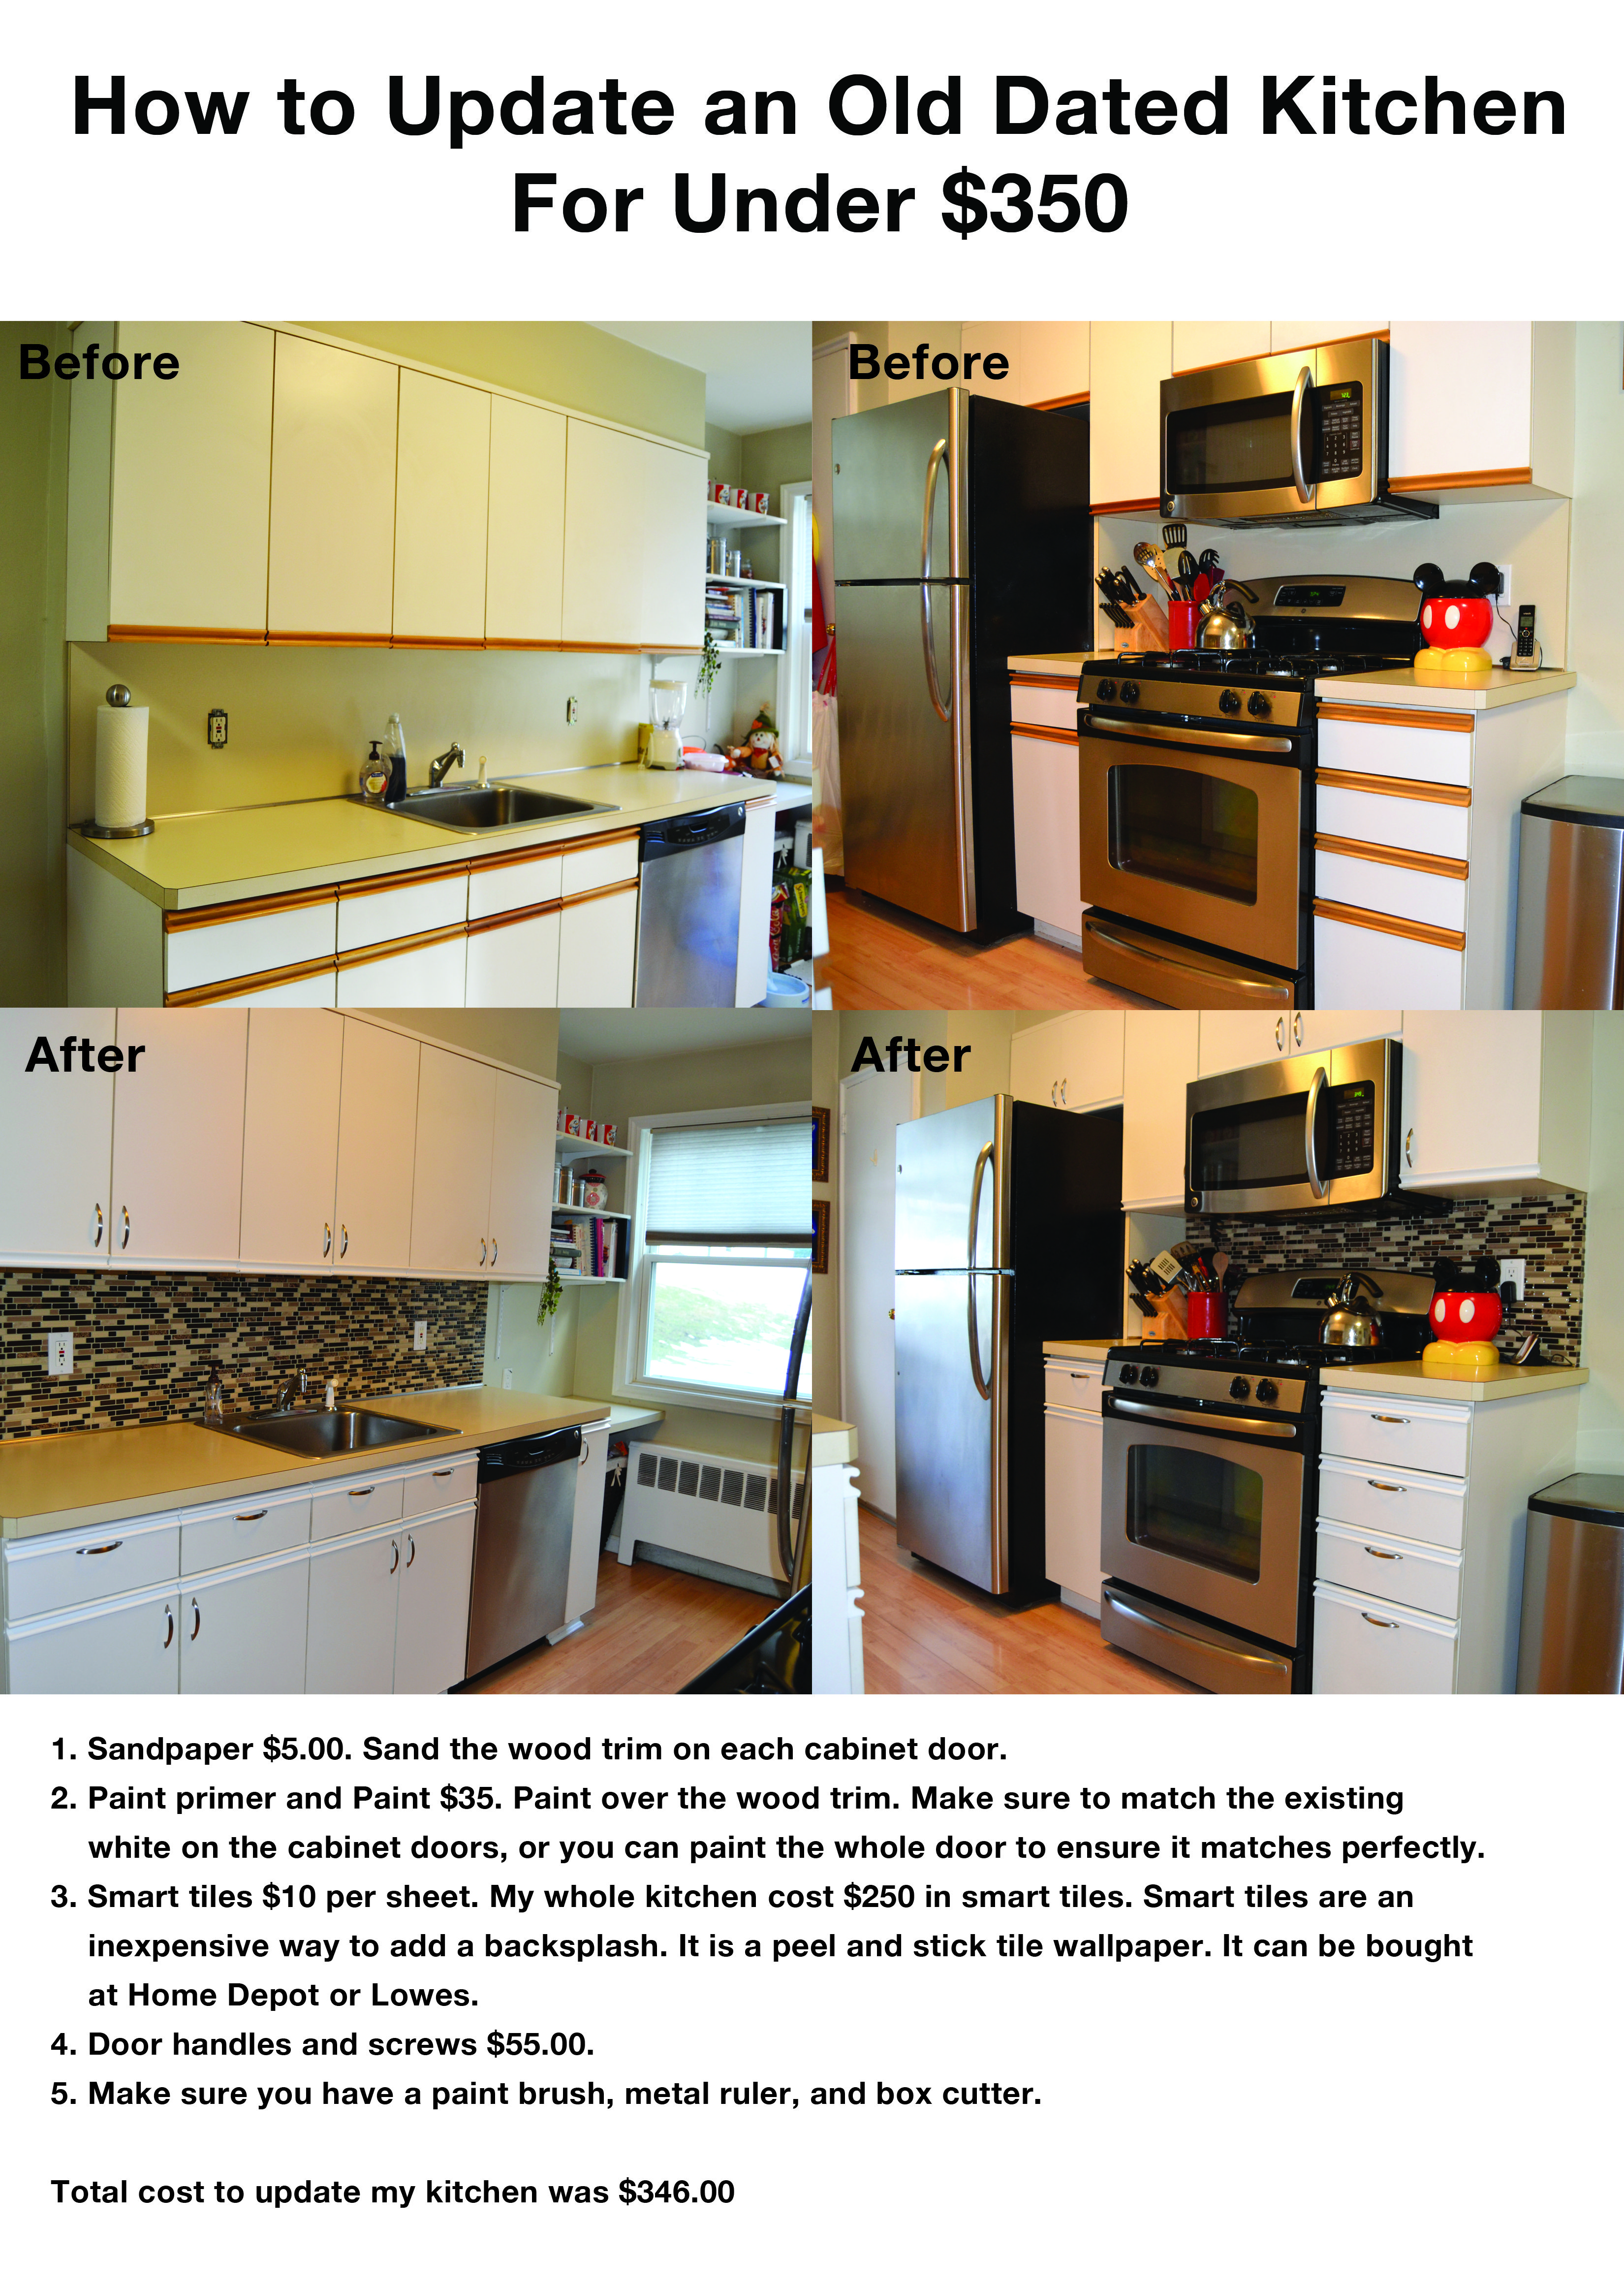 How I Updated My Old Dated 80 S Kitchen For Under 350 00 Kitchen Kitchenremodel Up Kitchen Remodeling Projects Kitchen Renovation Laminate Kitchen Cabinets